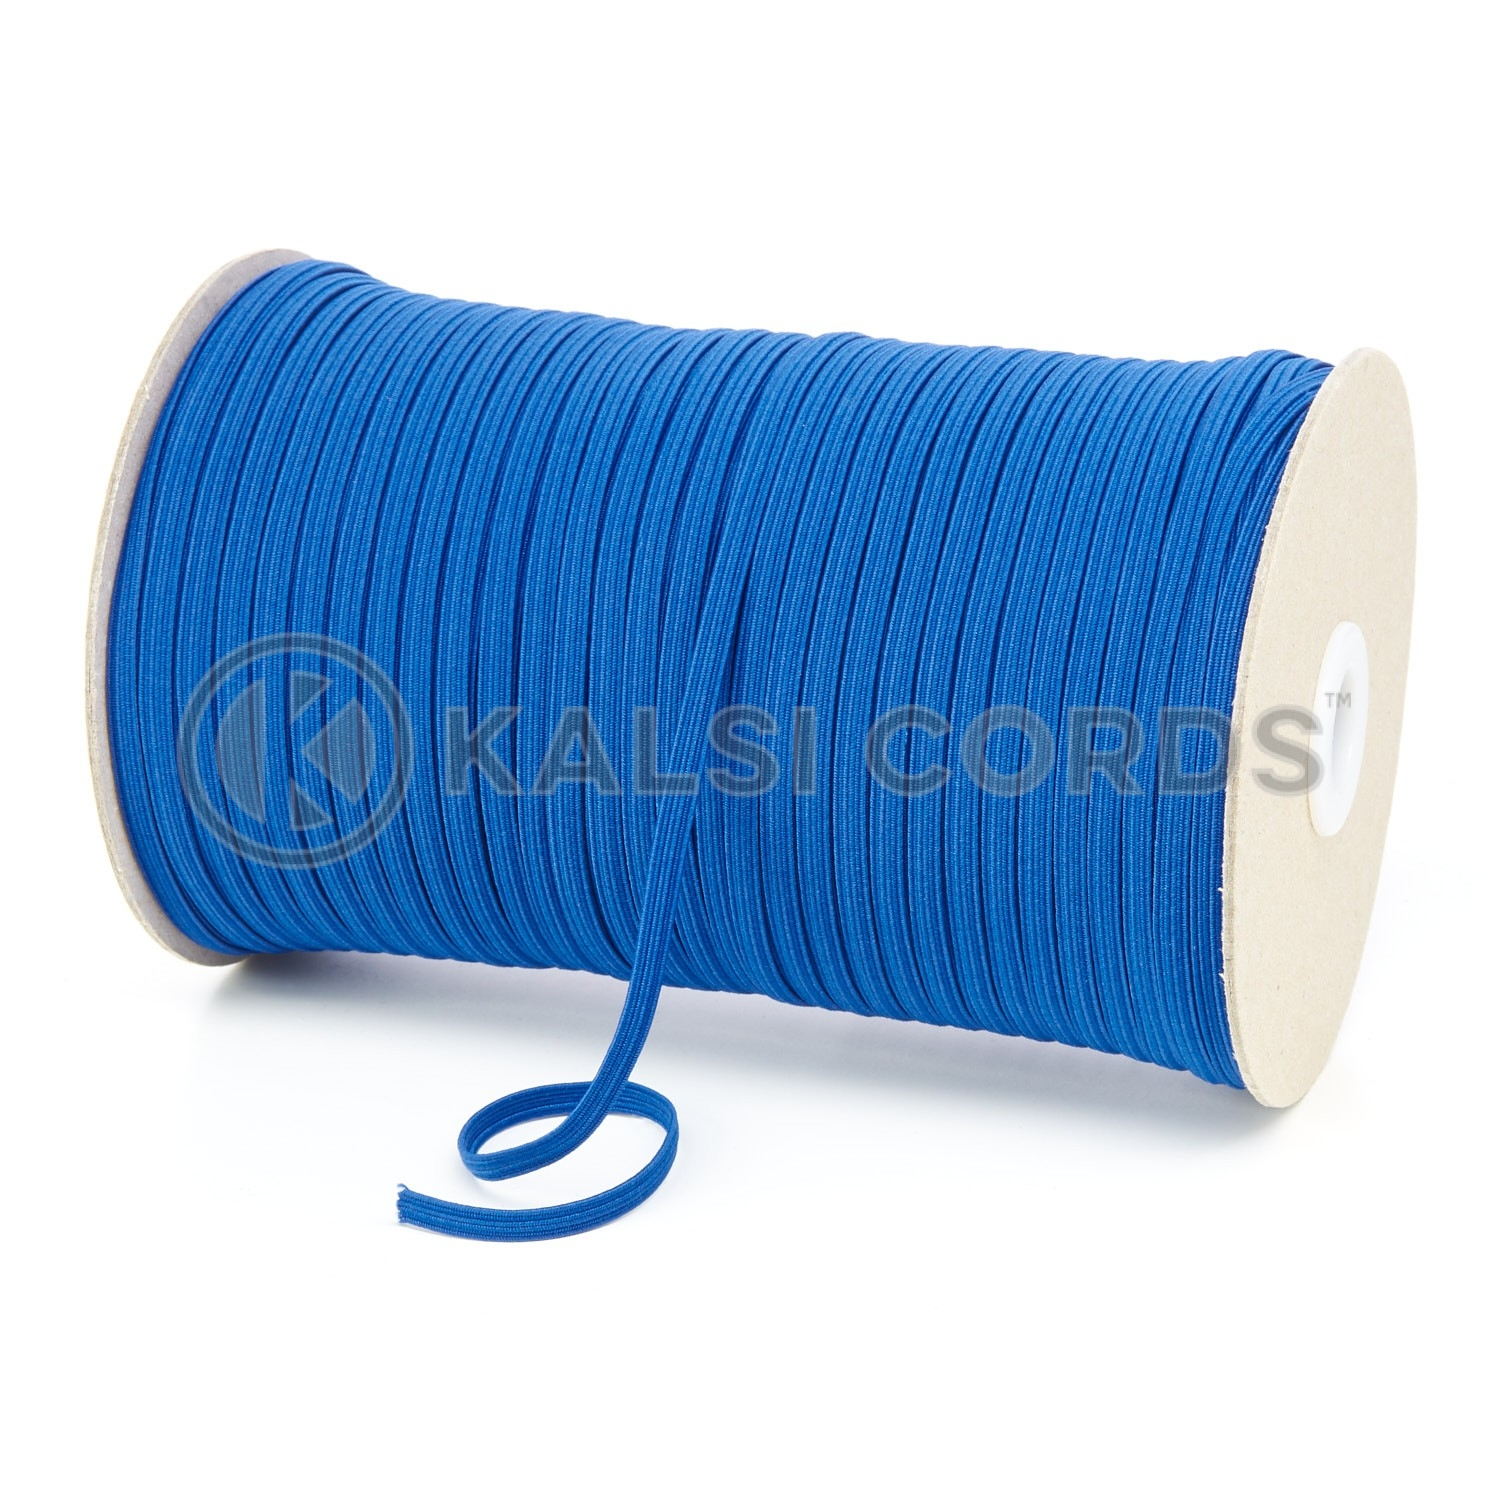 Royal Blue 4mm 6 Cord Flat Braided Elastic Roll Sewing Face Masks TPE10 Kalsi Cords